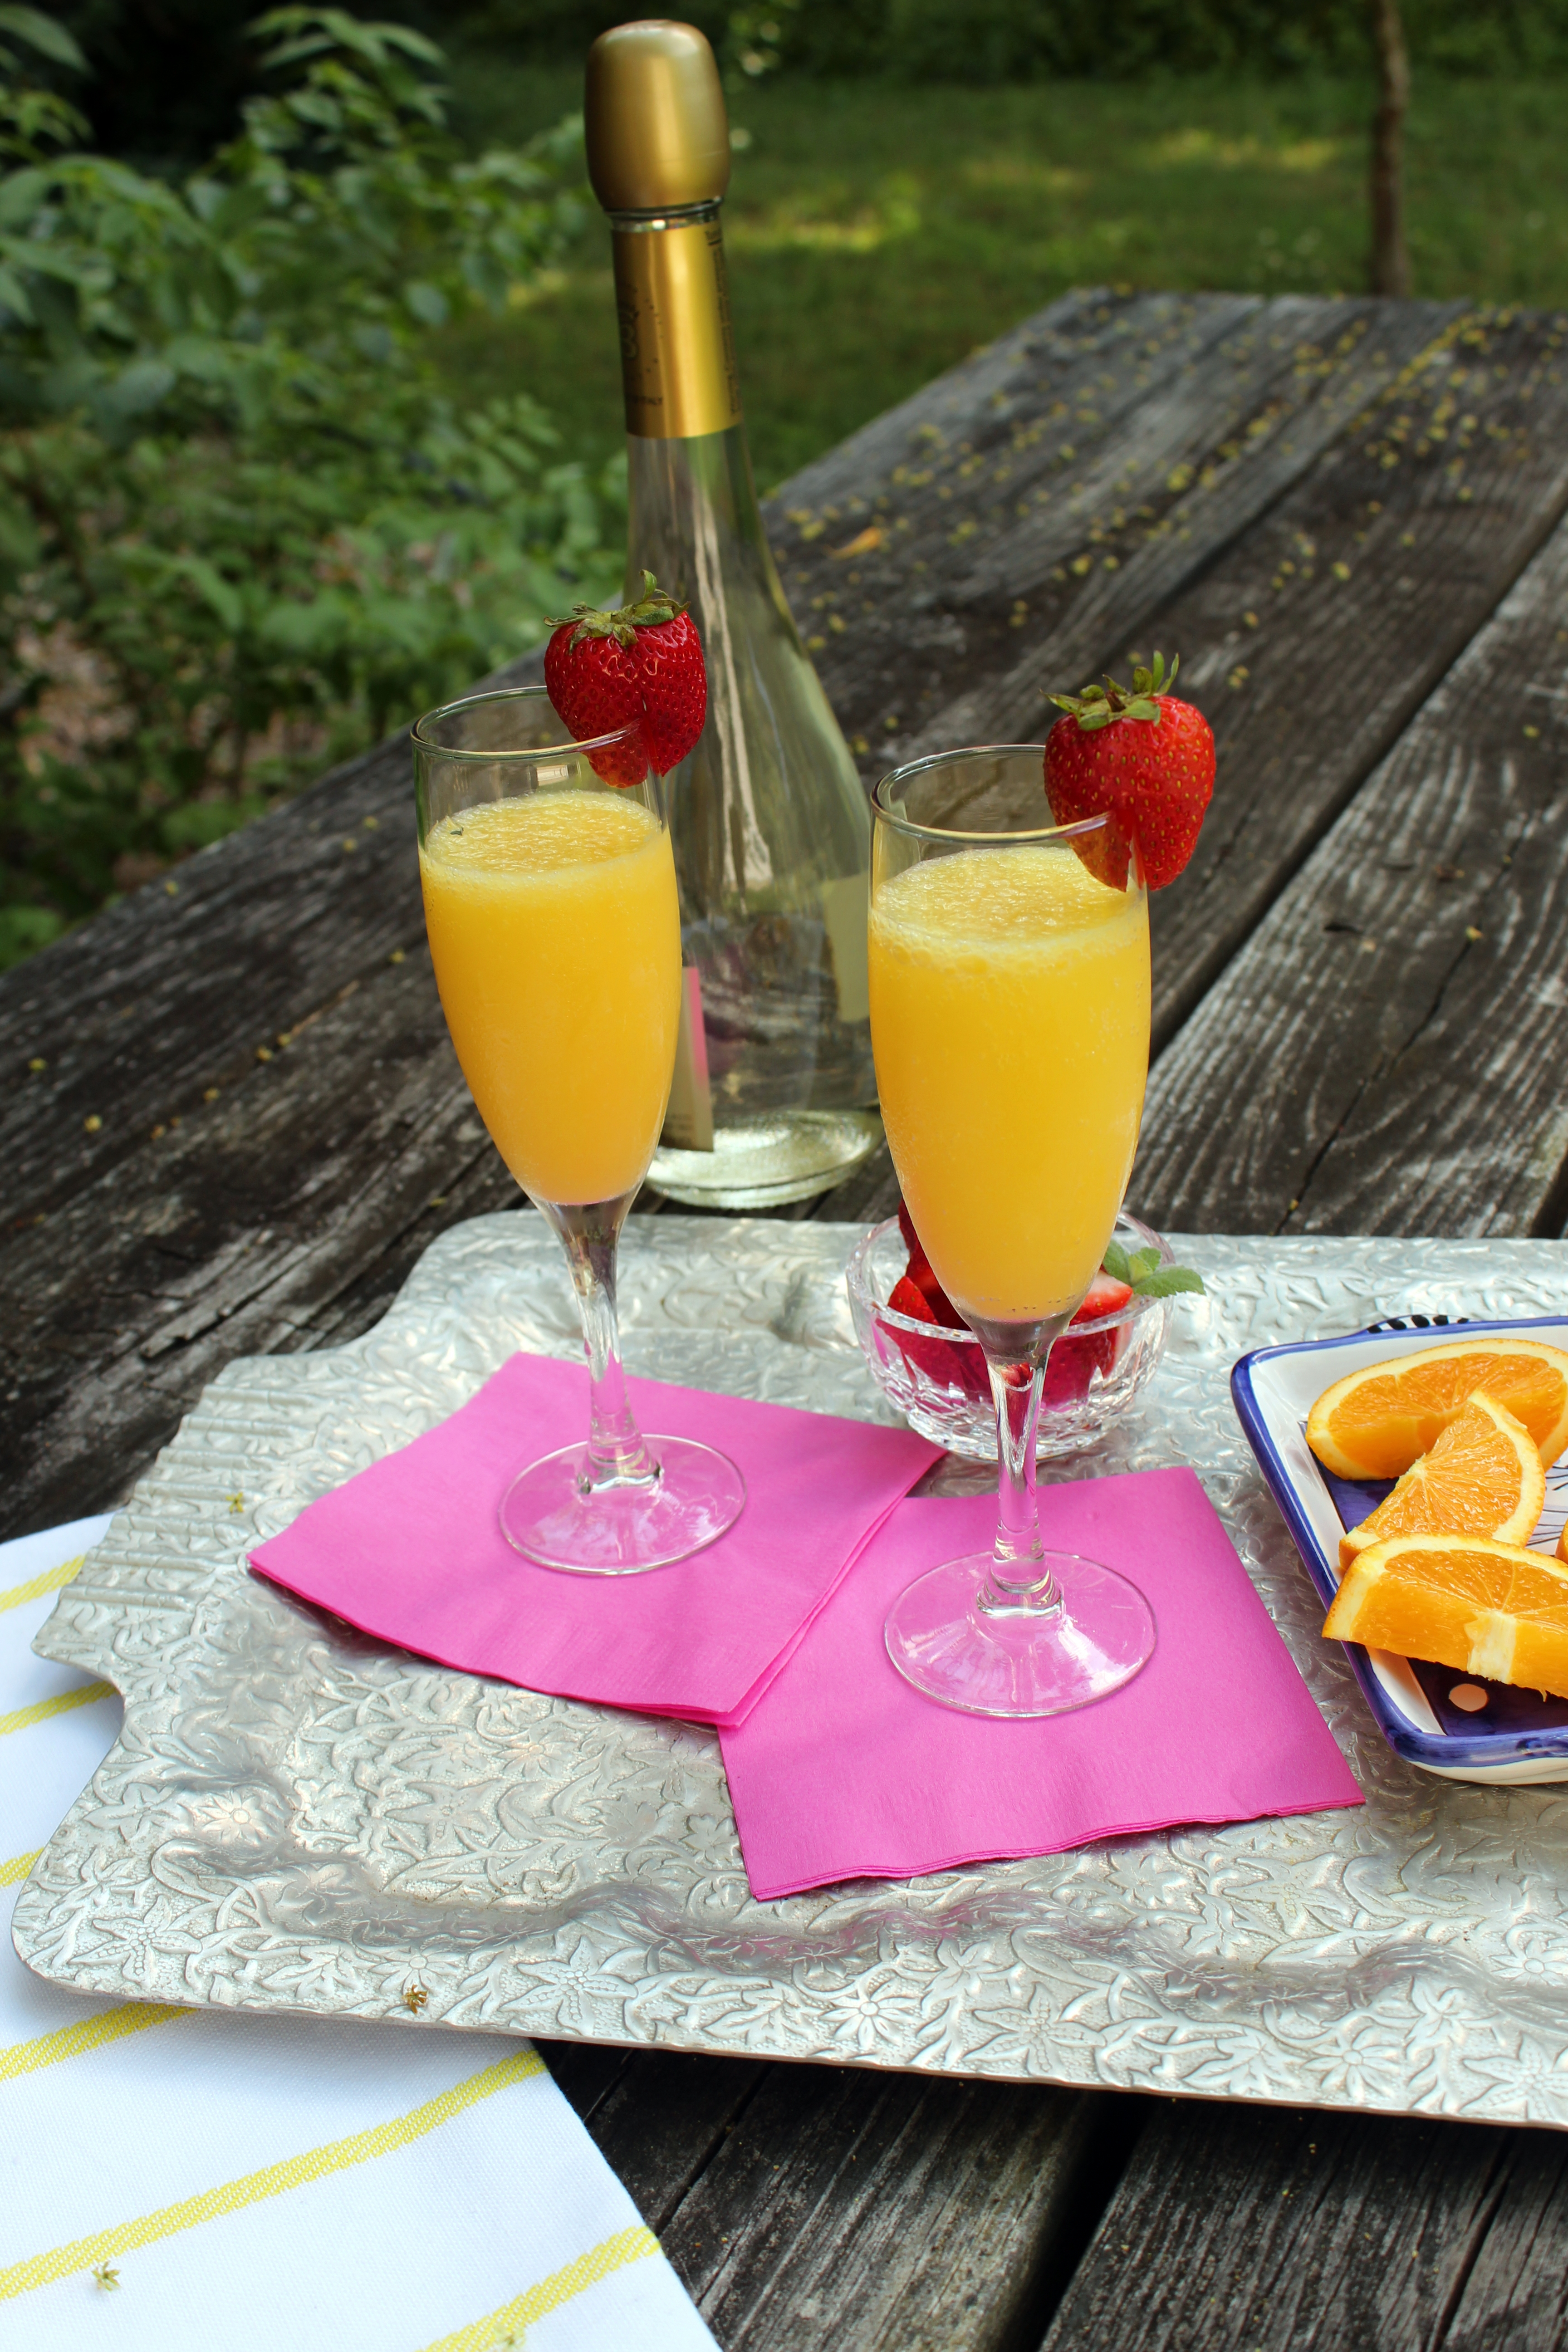 Strawberry-Pineapple Mimosas